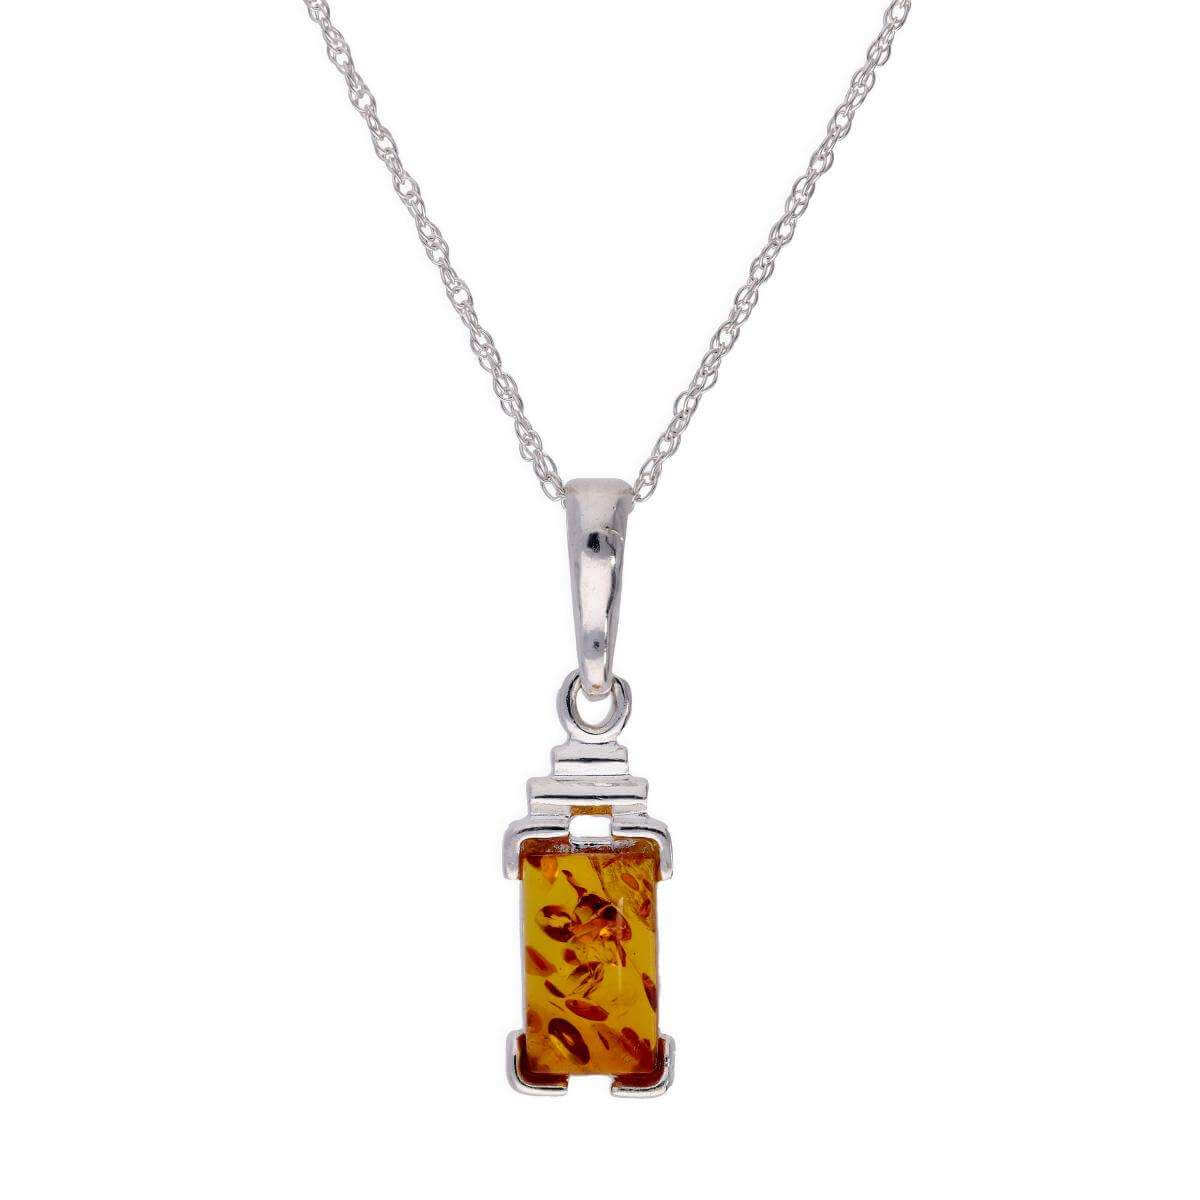 Sterling Silver & Baltic Amber Rectangular Pendant Necklace 16 - 22 Inches